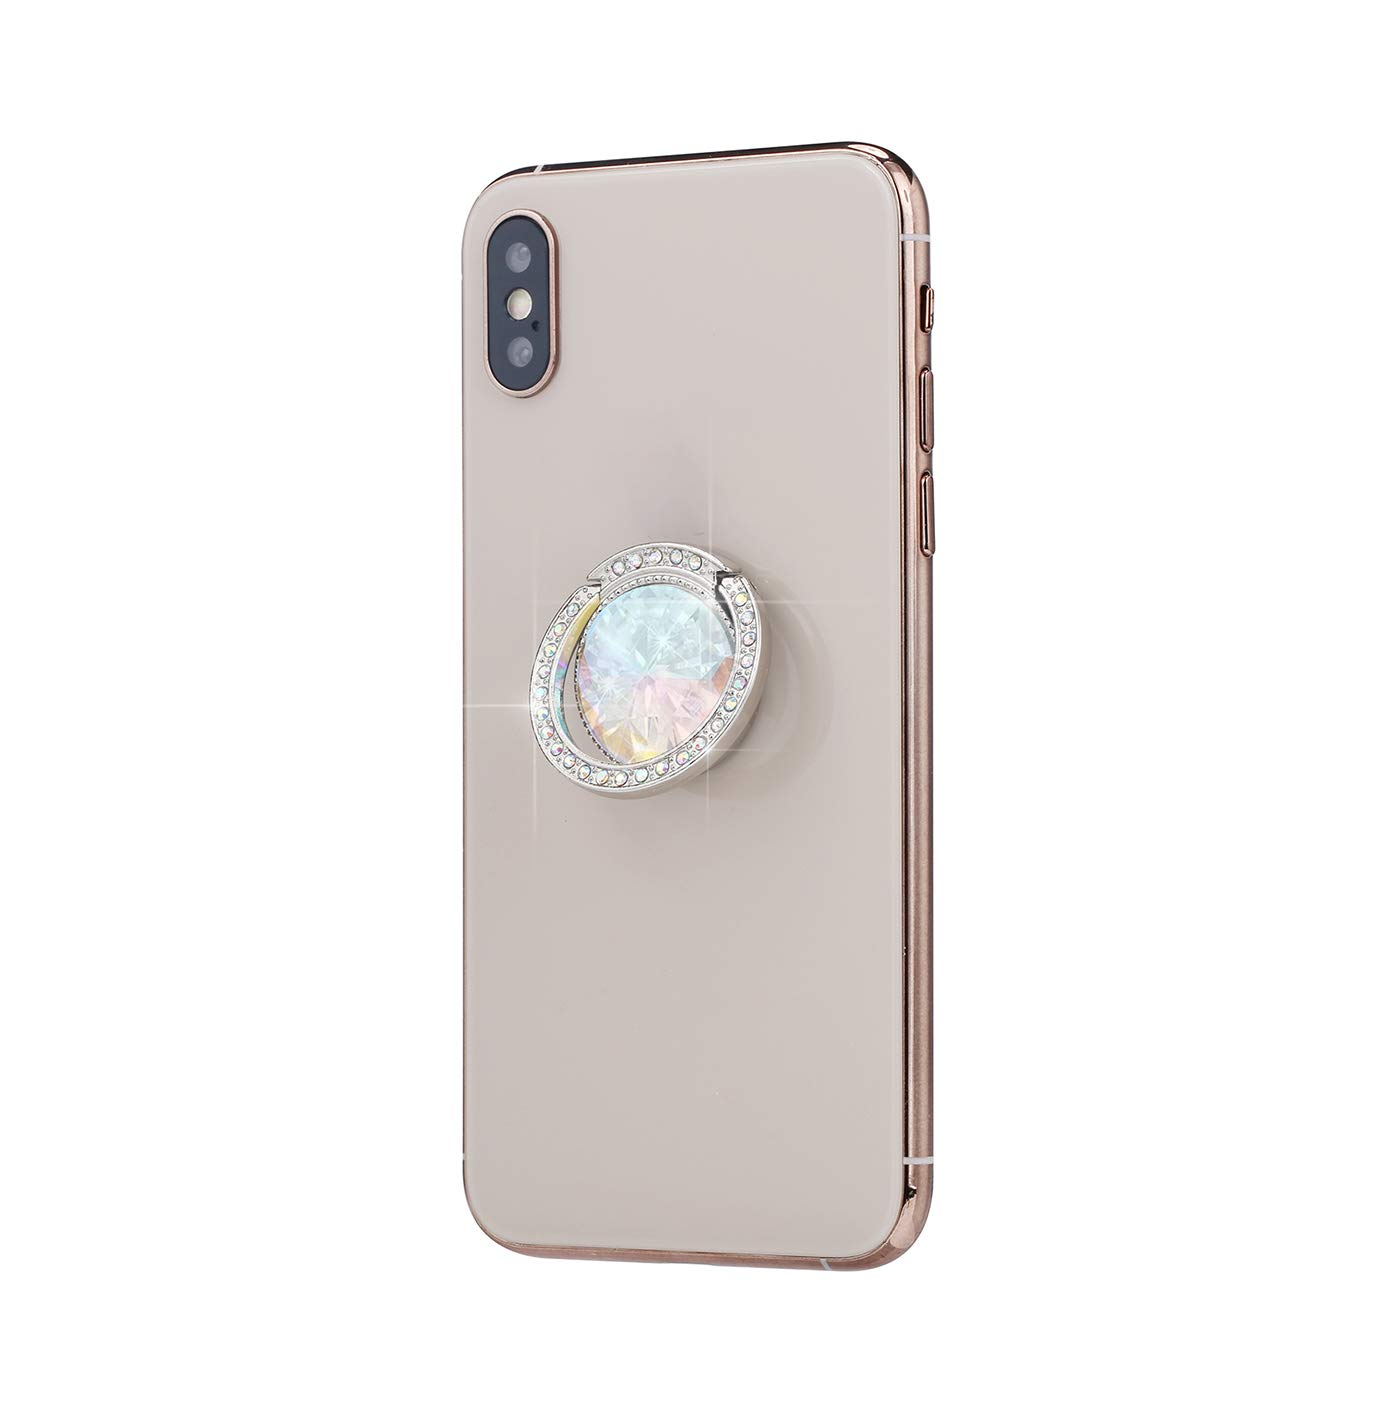 Glitter Bling Bling Phone Ring Holder,Sparkle Phone Ring Artificial Diamond Kickstand,Rhinestone Cell Phone Finger Ring Grip for Girls//Women for Almost All Phones//Pad Silver